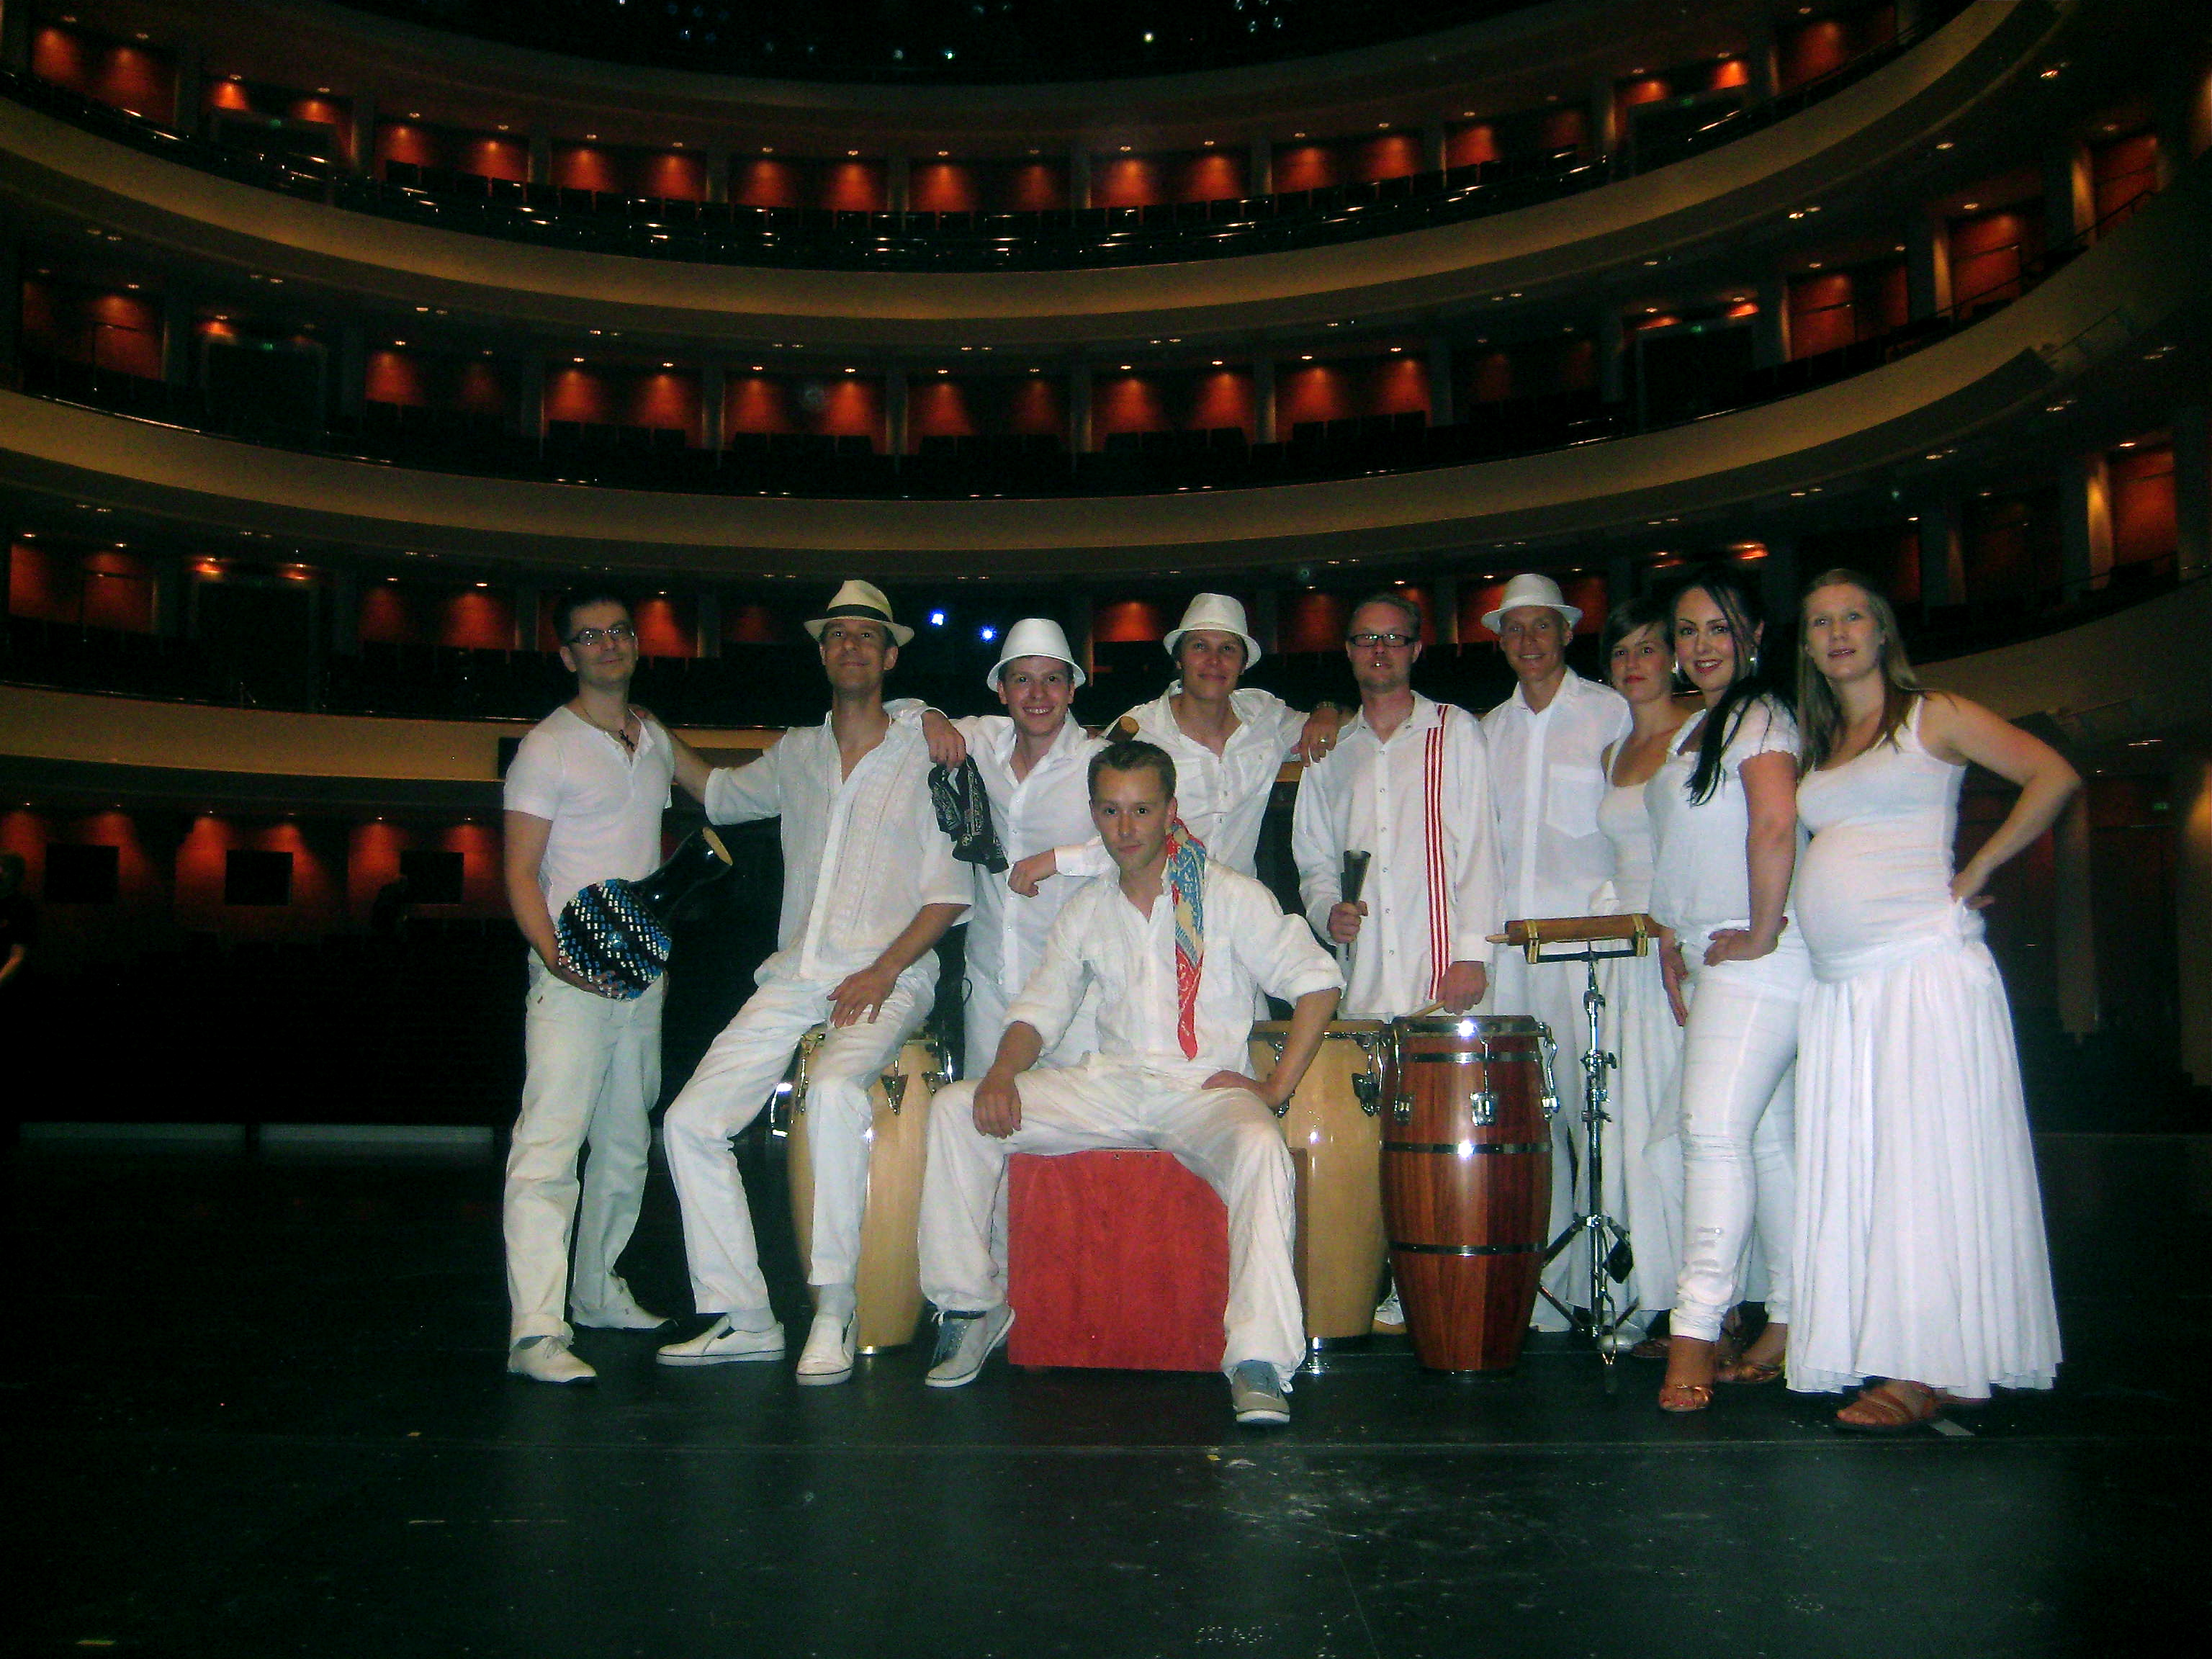 Los Elementos at the Opera house